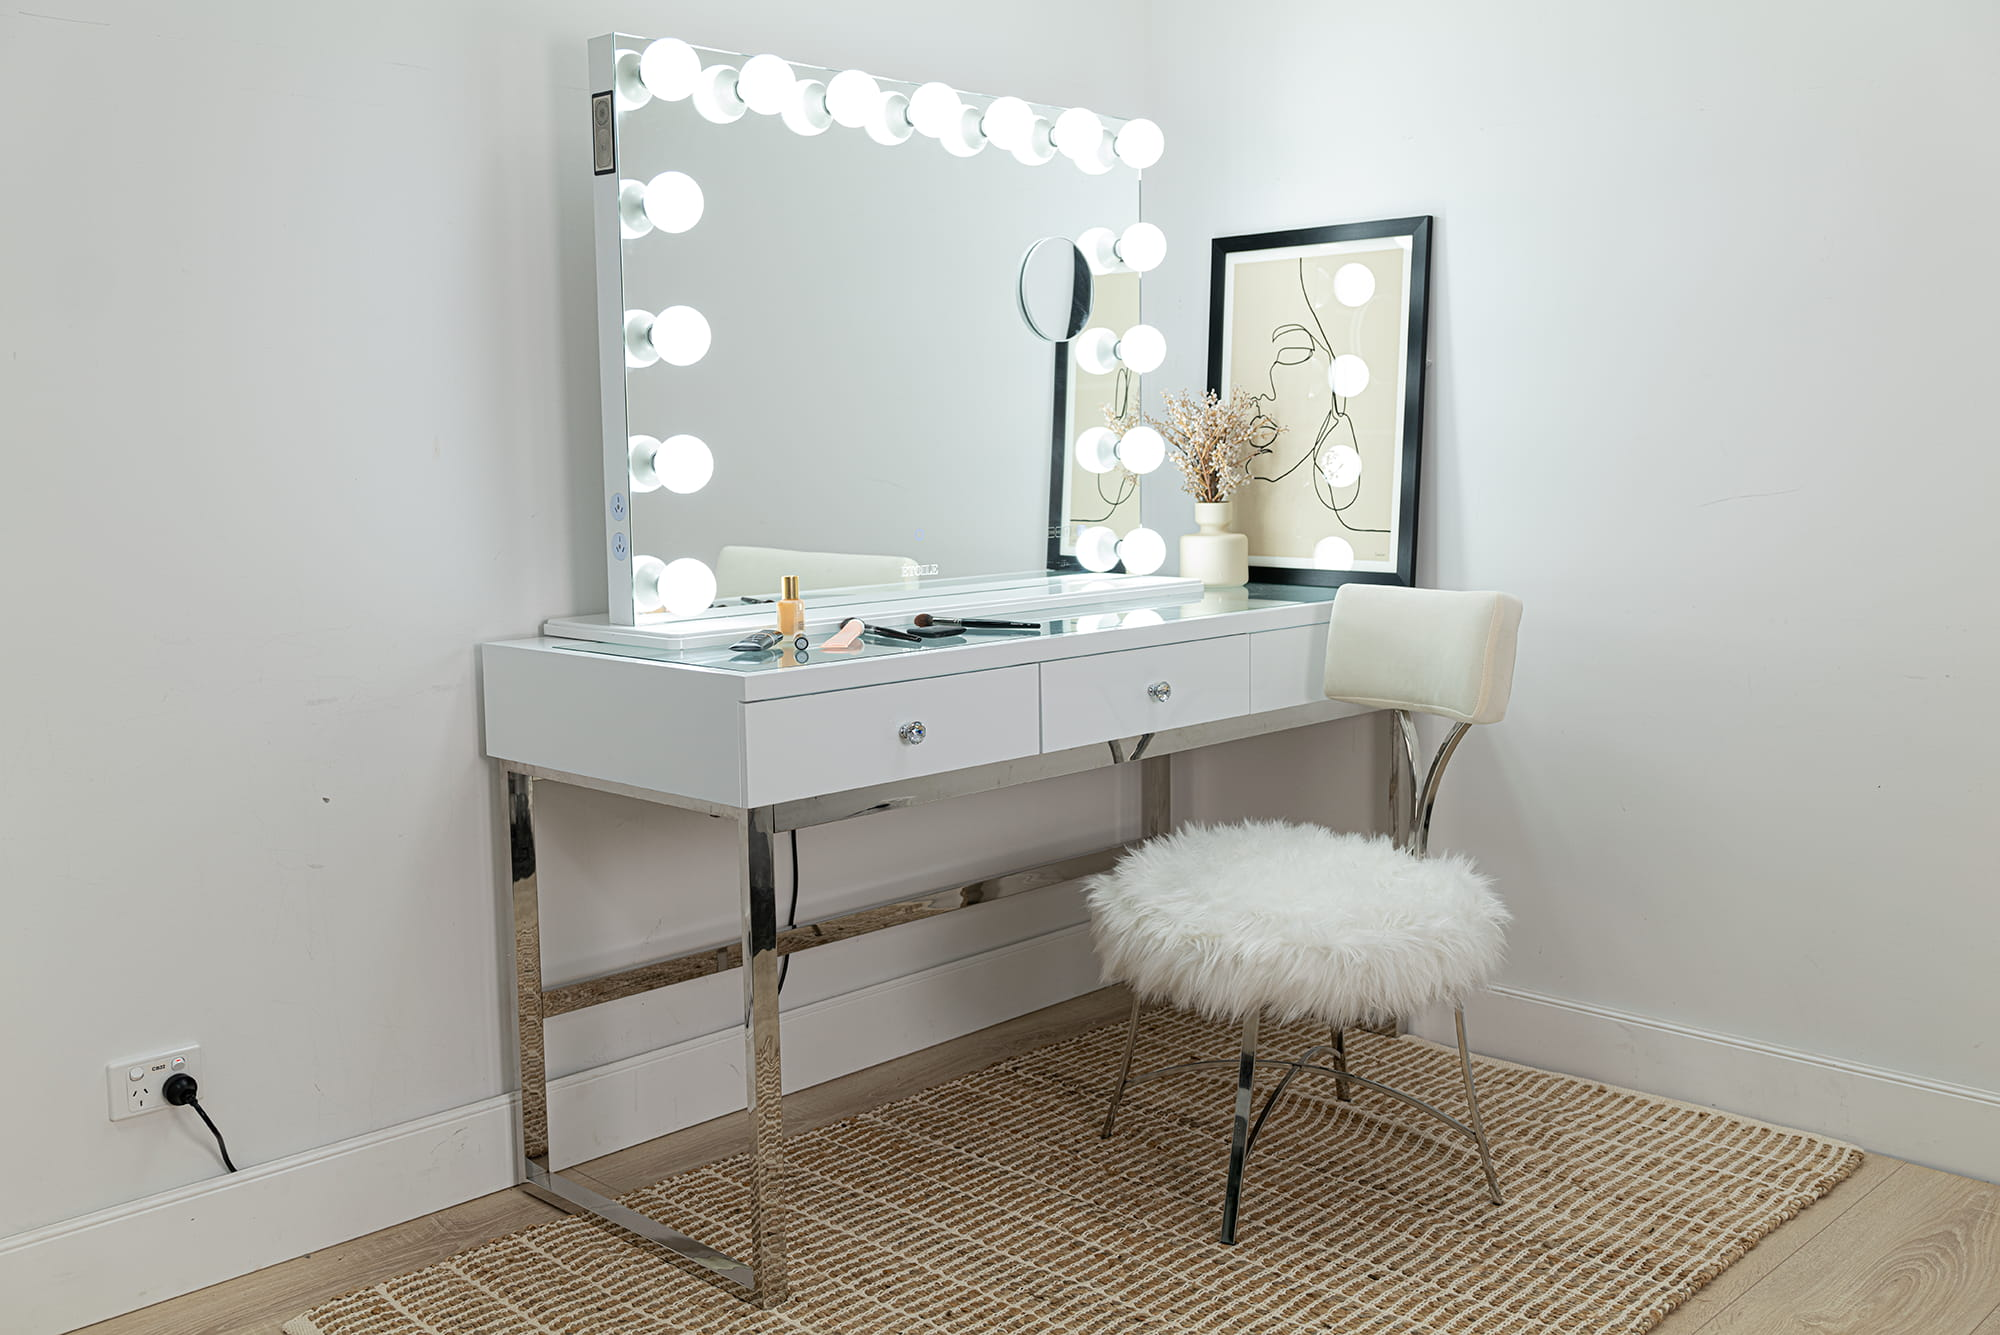 Faux Fur Vanity Chair with Mirror by Etoile Collective